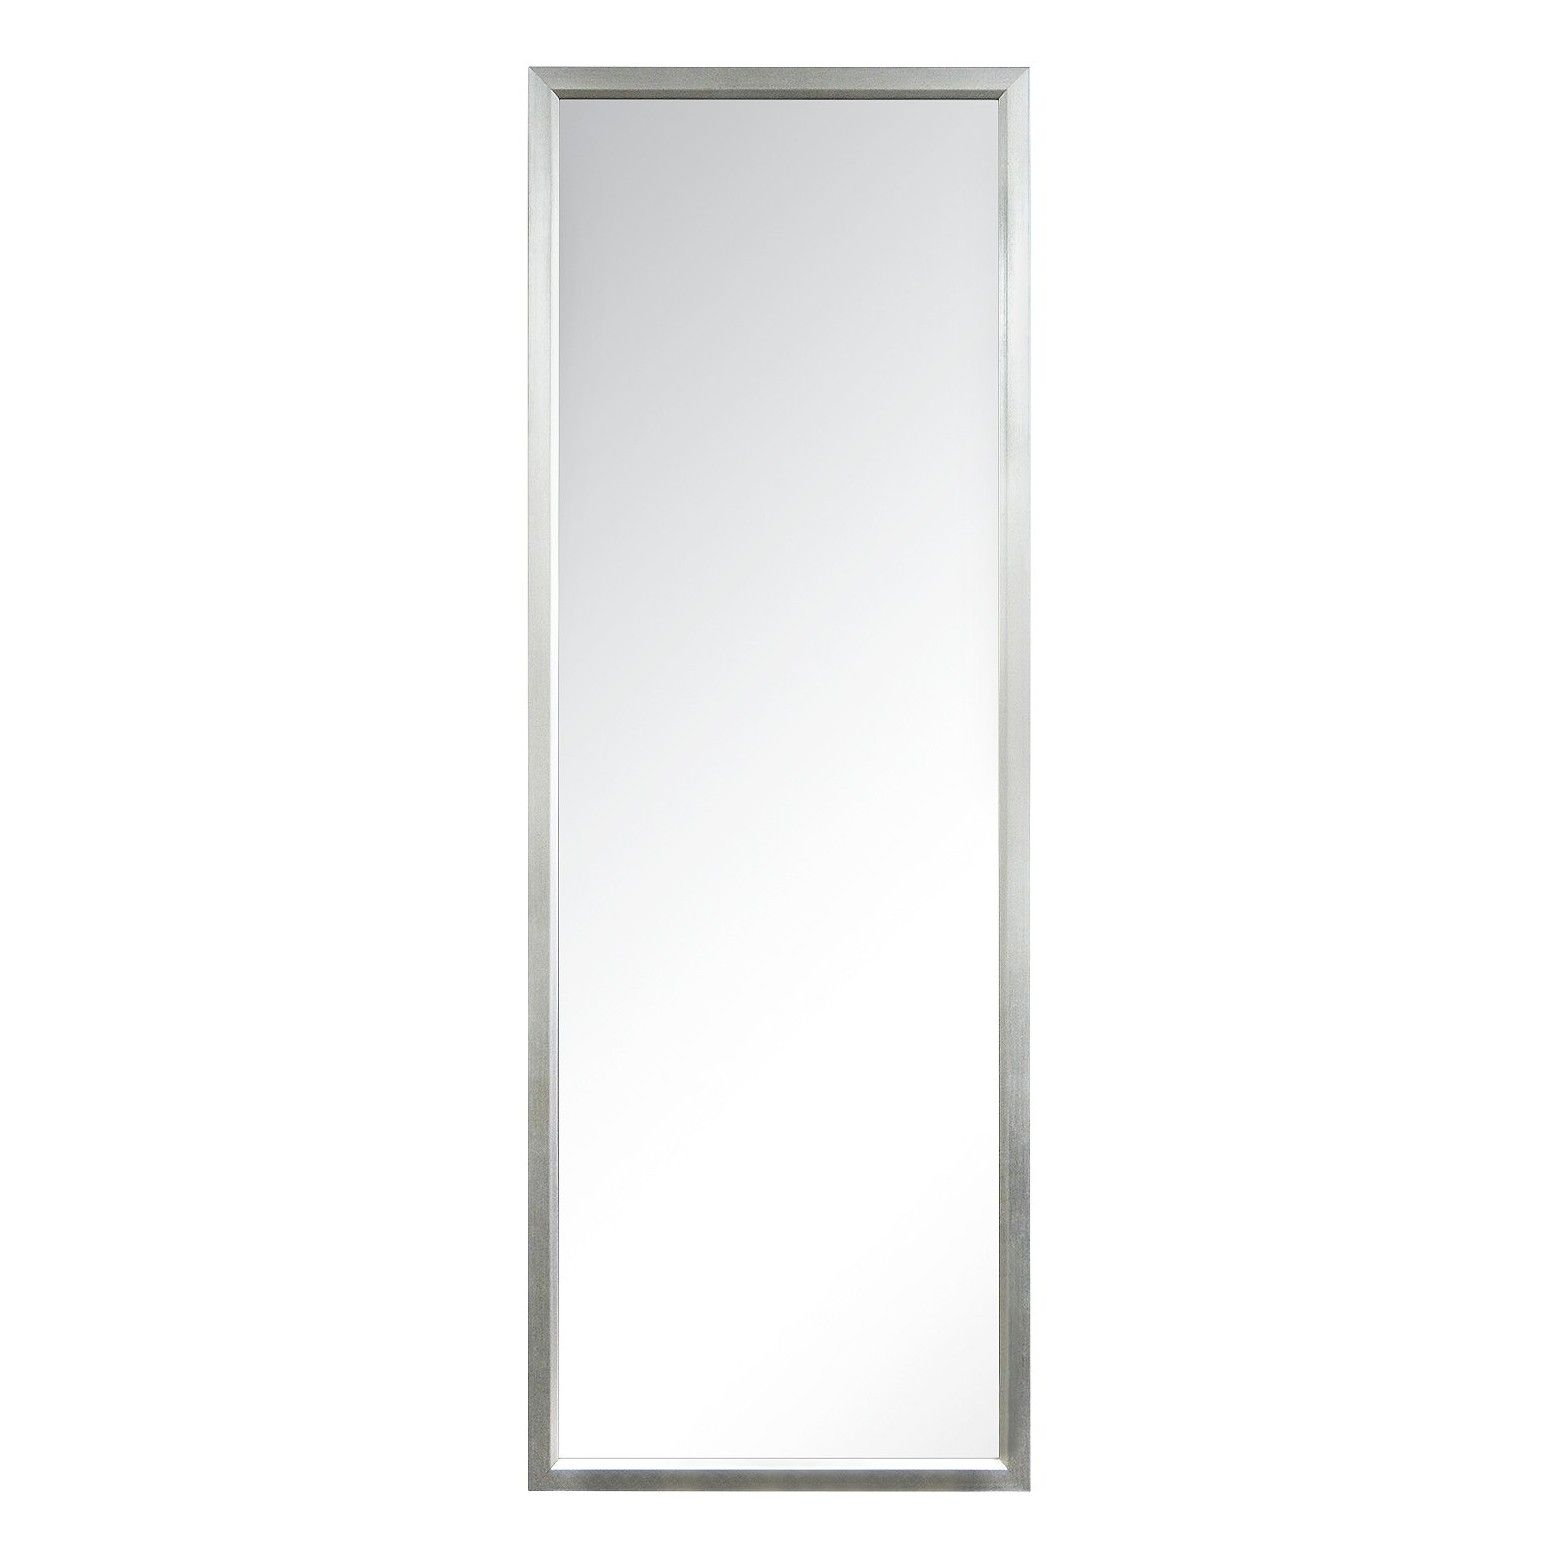 Rectangle Leaner Floor Mirror Silver Threshold Traditional Decor